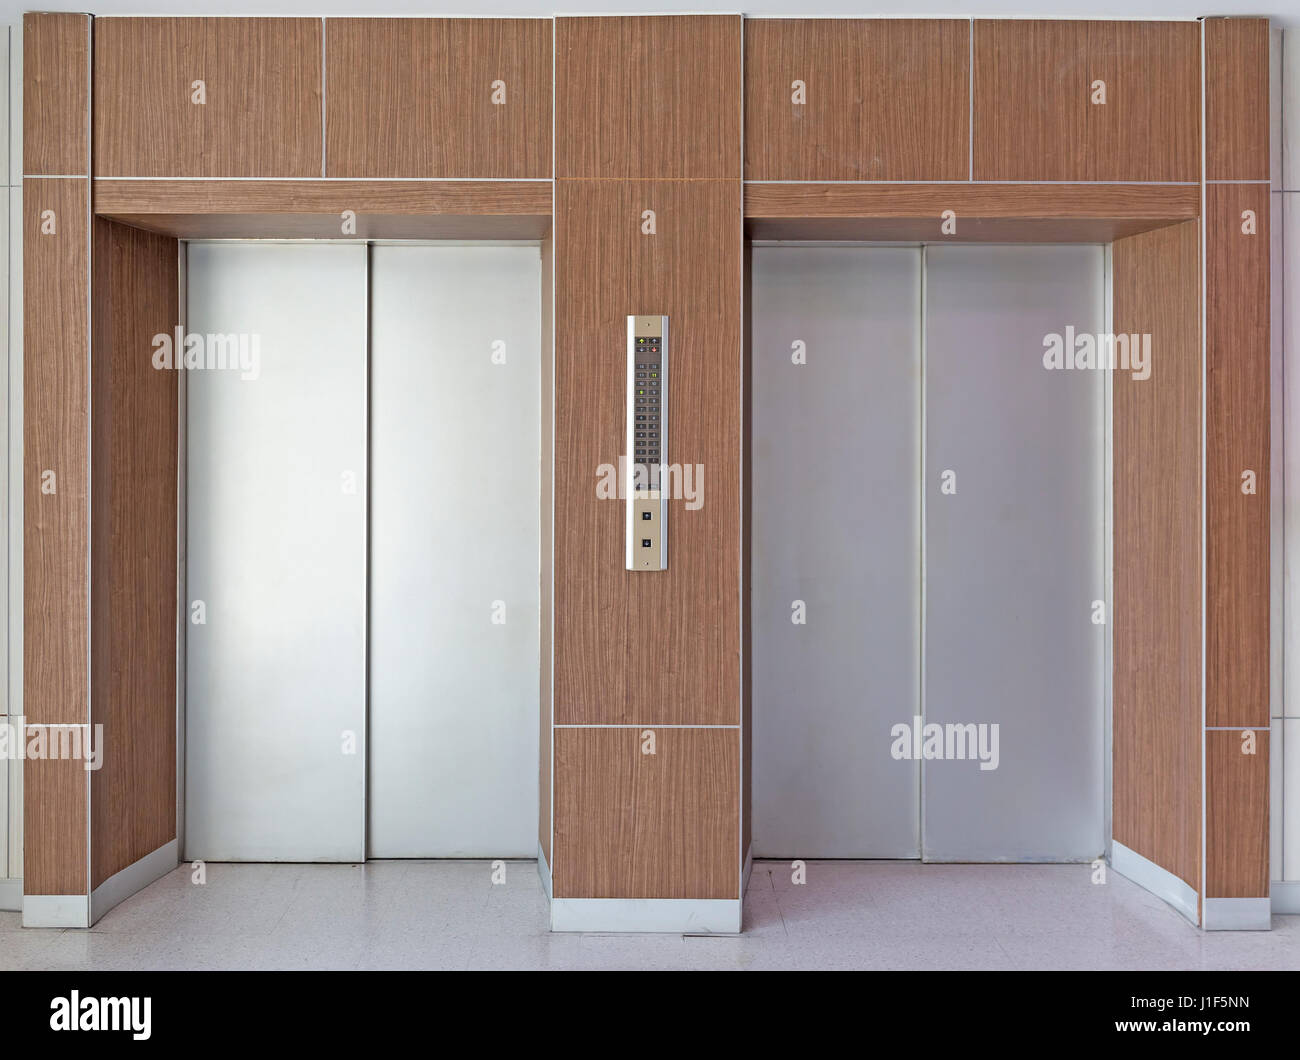 Elevator door or steel door inside office building Stock Photo ...